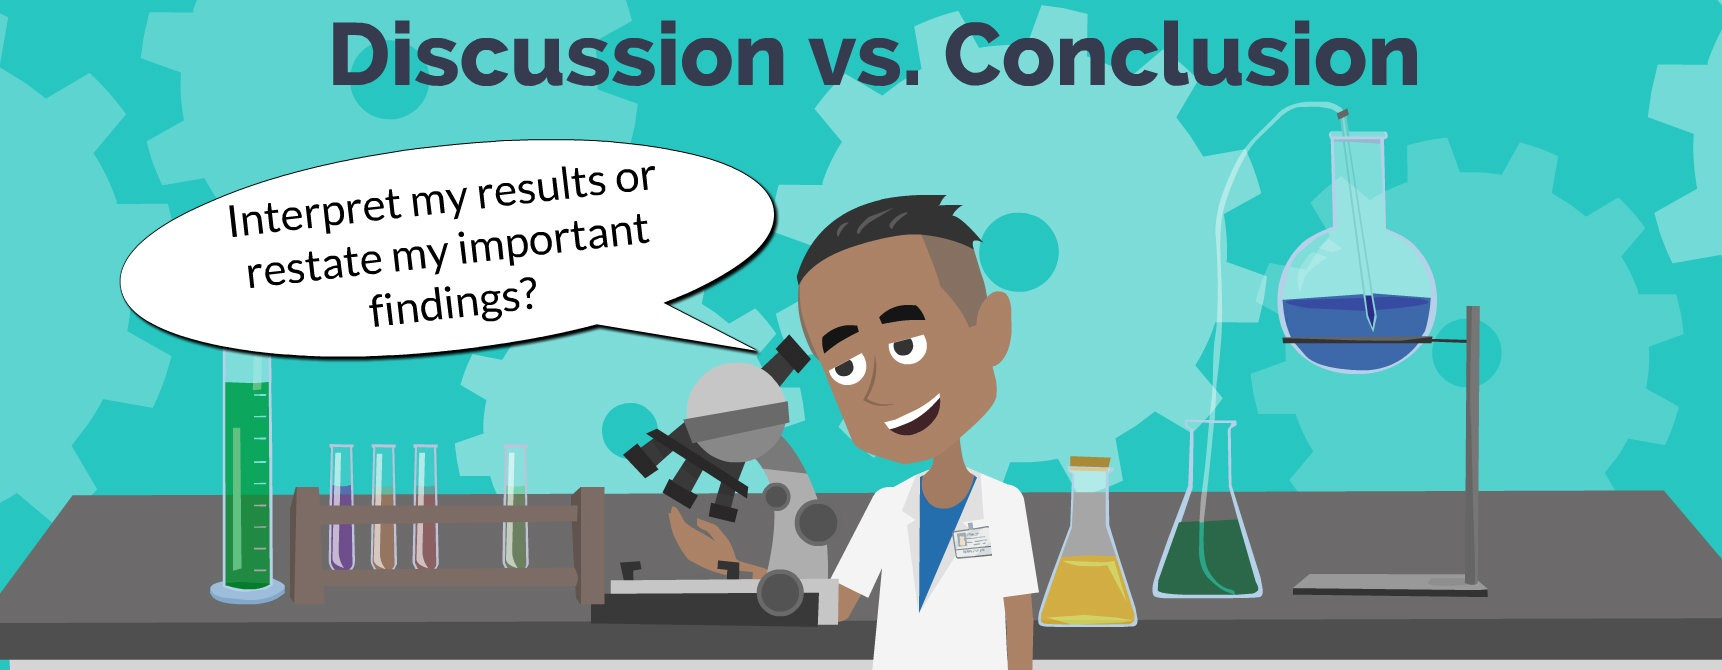 Discussion Vs. Conclusion